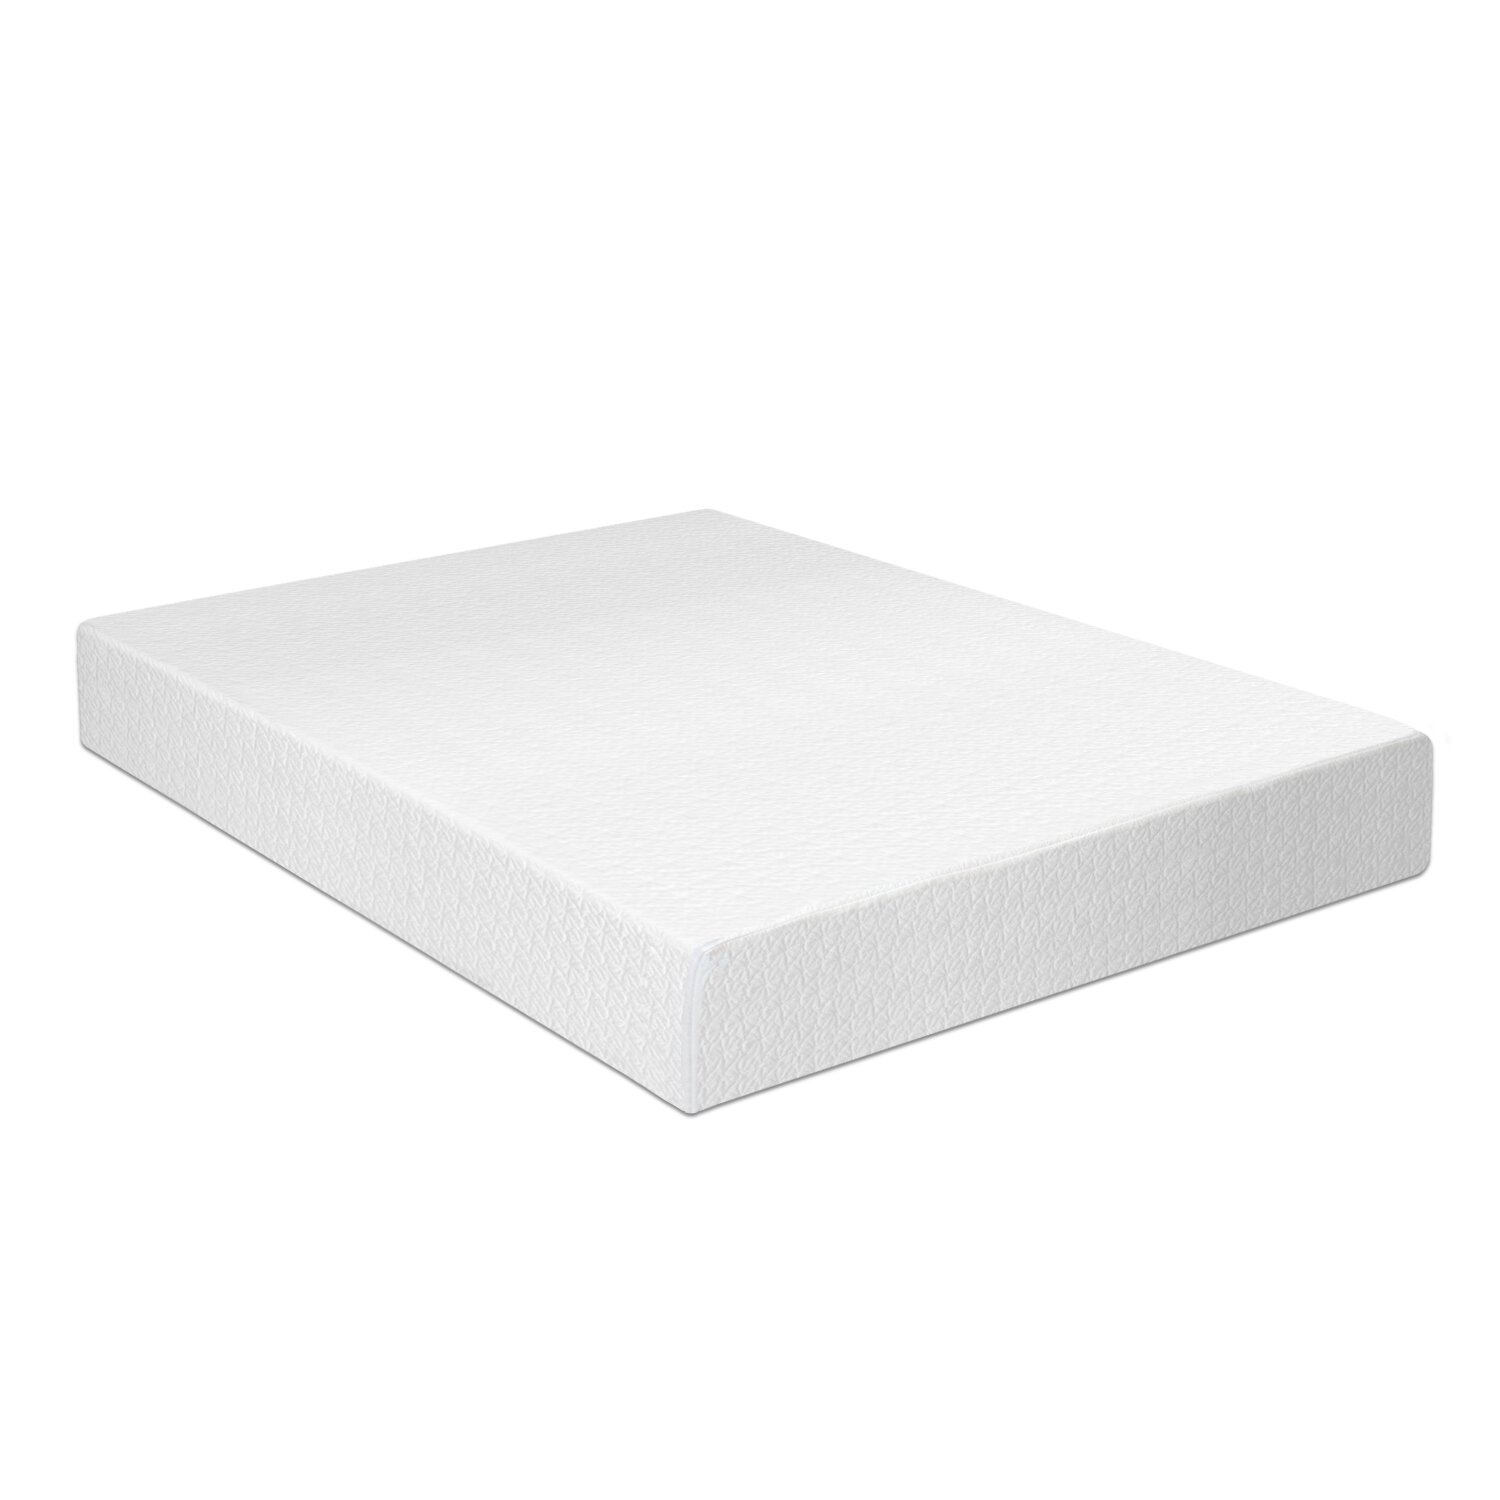 Top Memory Foam Mattress Best Price Mattress Best Price Memory Foam Mattress Value For Bed